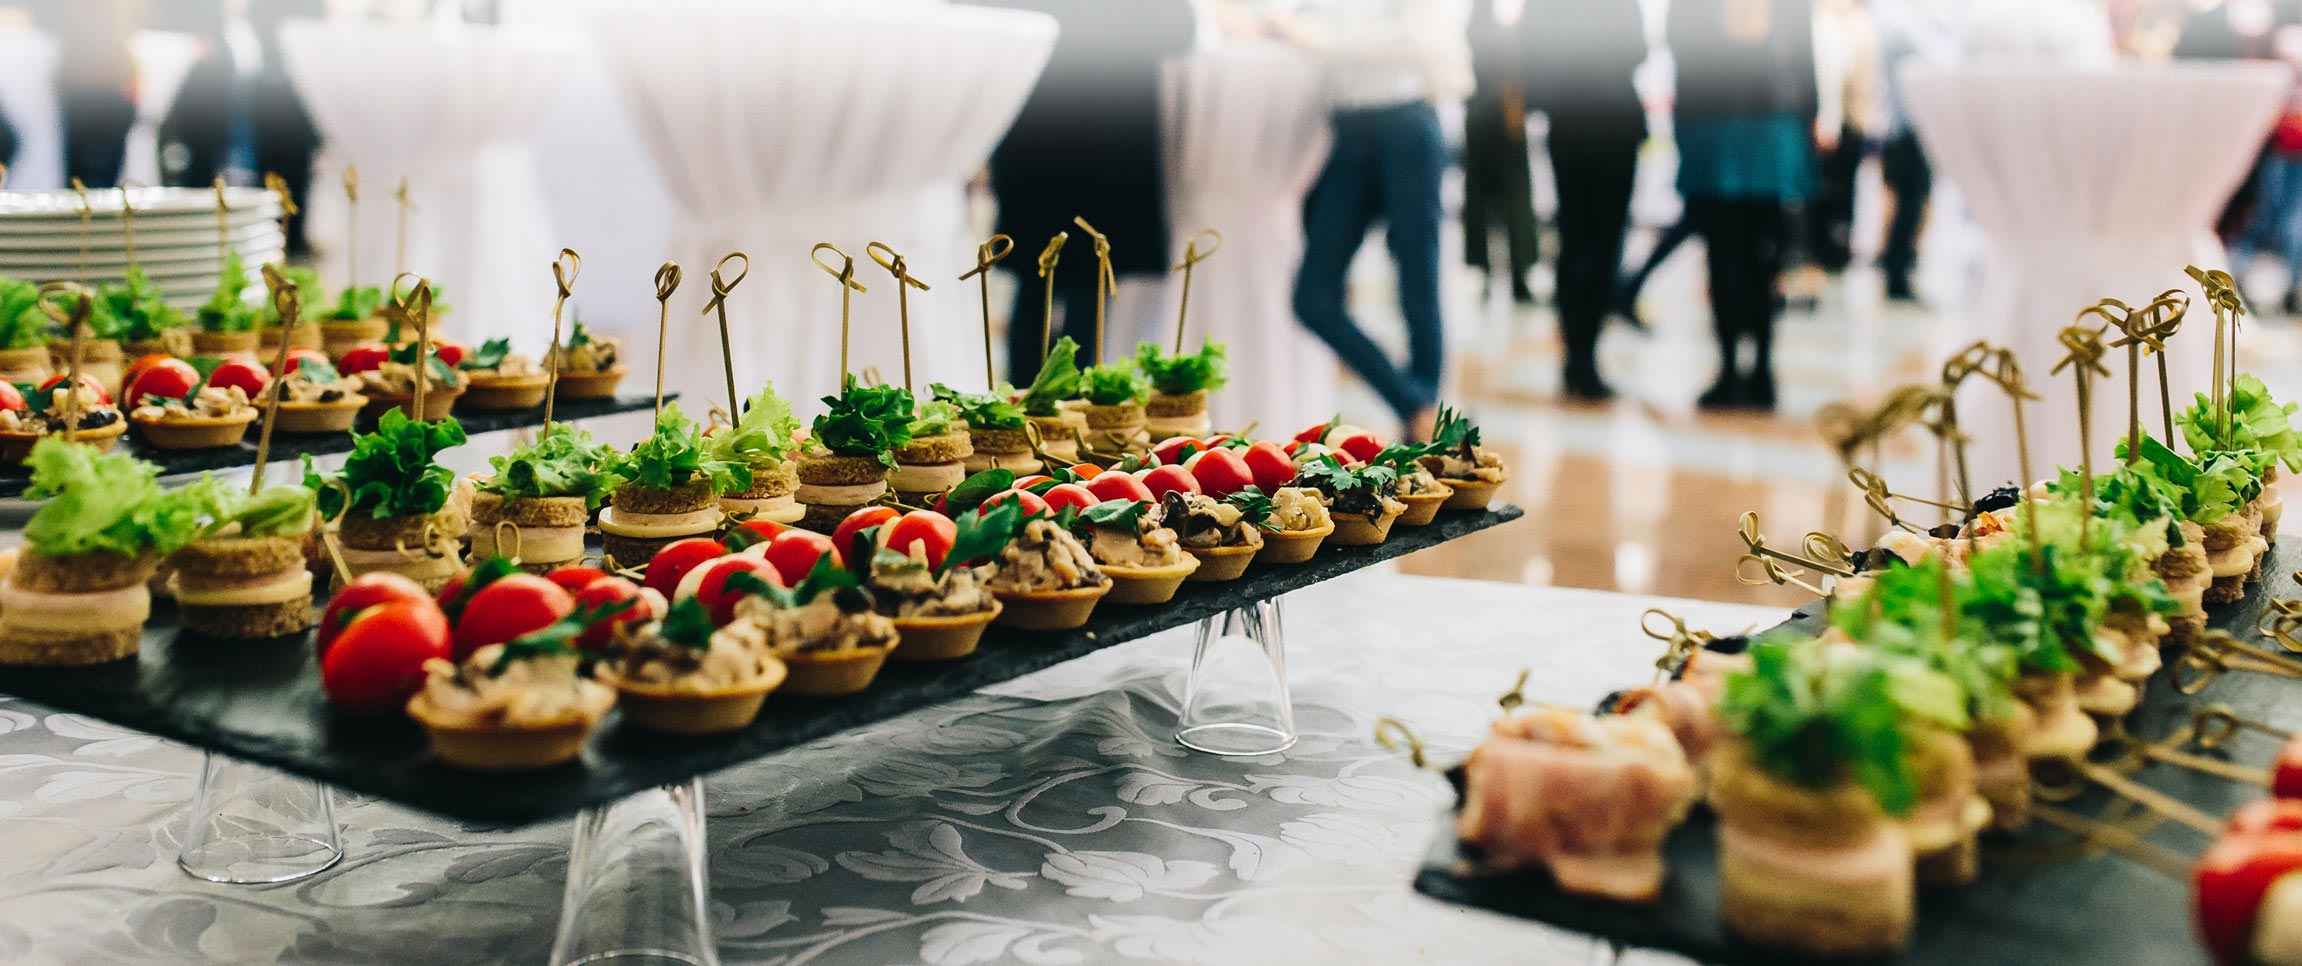 Plan Ahead for Holiday Catering